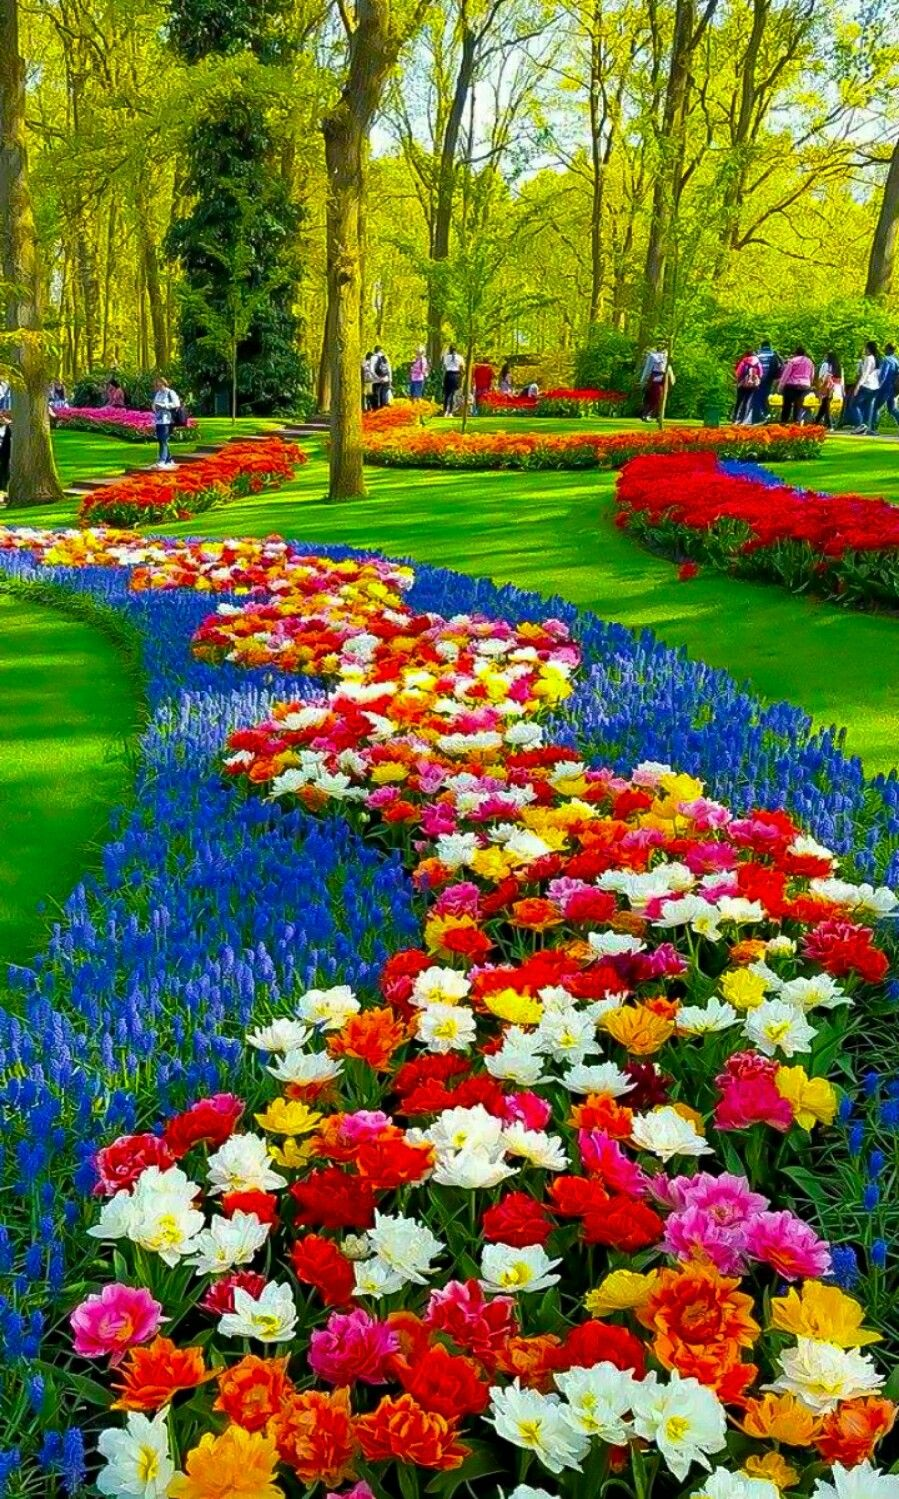 Visiting The Outdoors Garden Beautiful Flowers Garden Most Beautiful Gardens Gorgeous Gardens